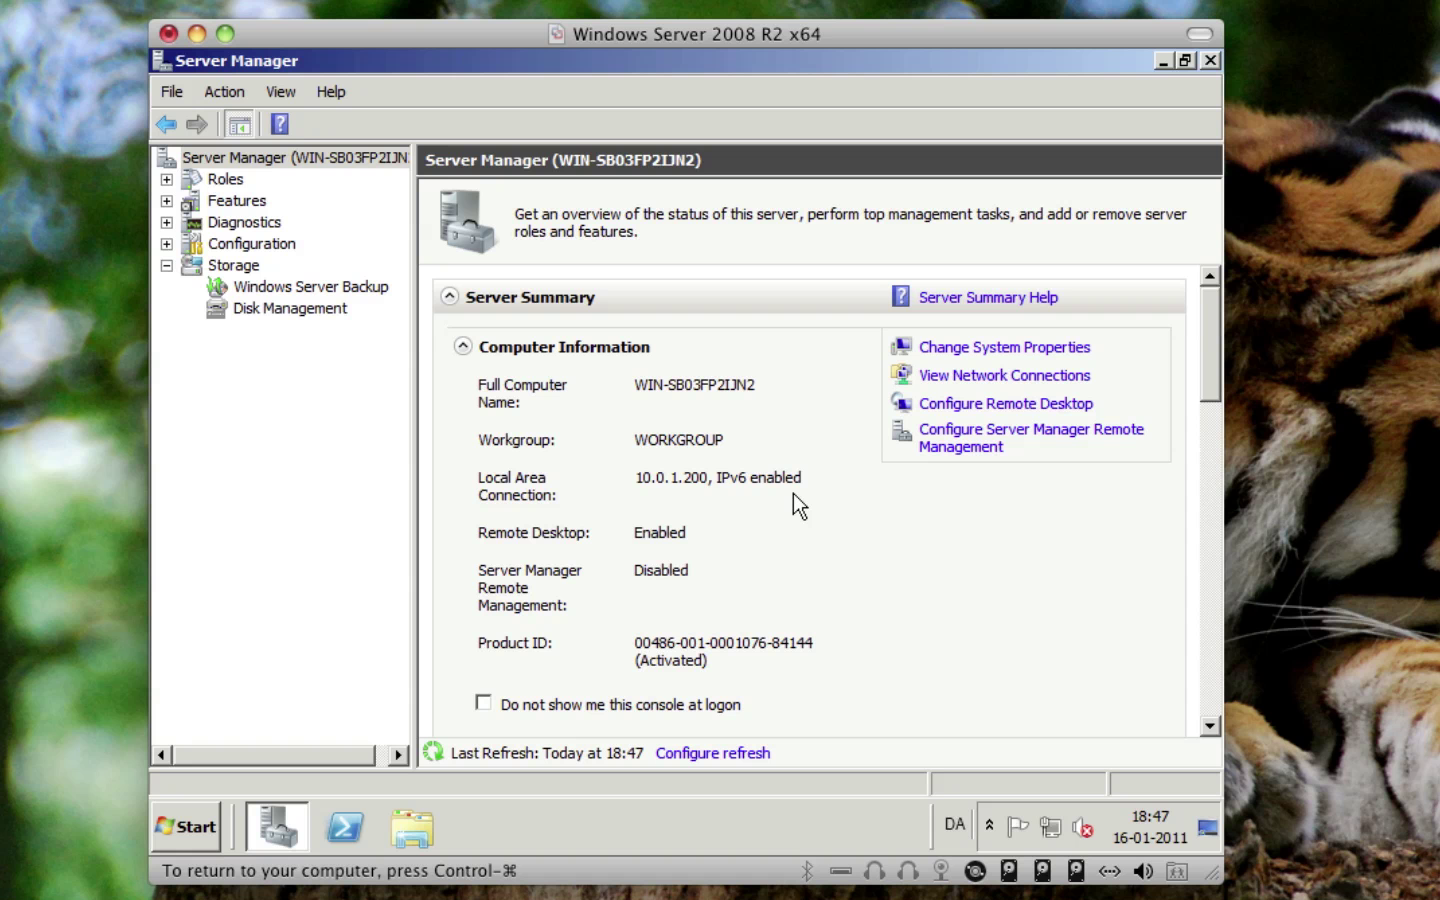 Windows Server 2008 - Remote Desktop